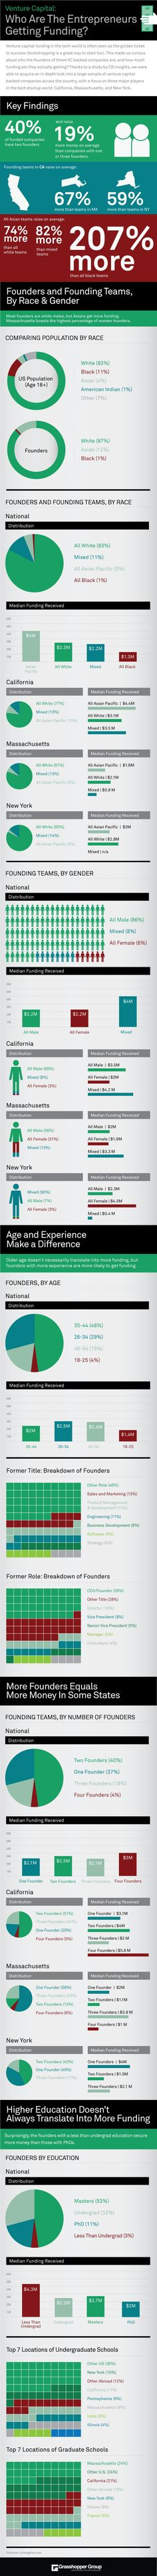 Venture Capital: Who Are The Entrepreneurs Getting Funding? [Infographic]